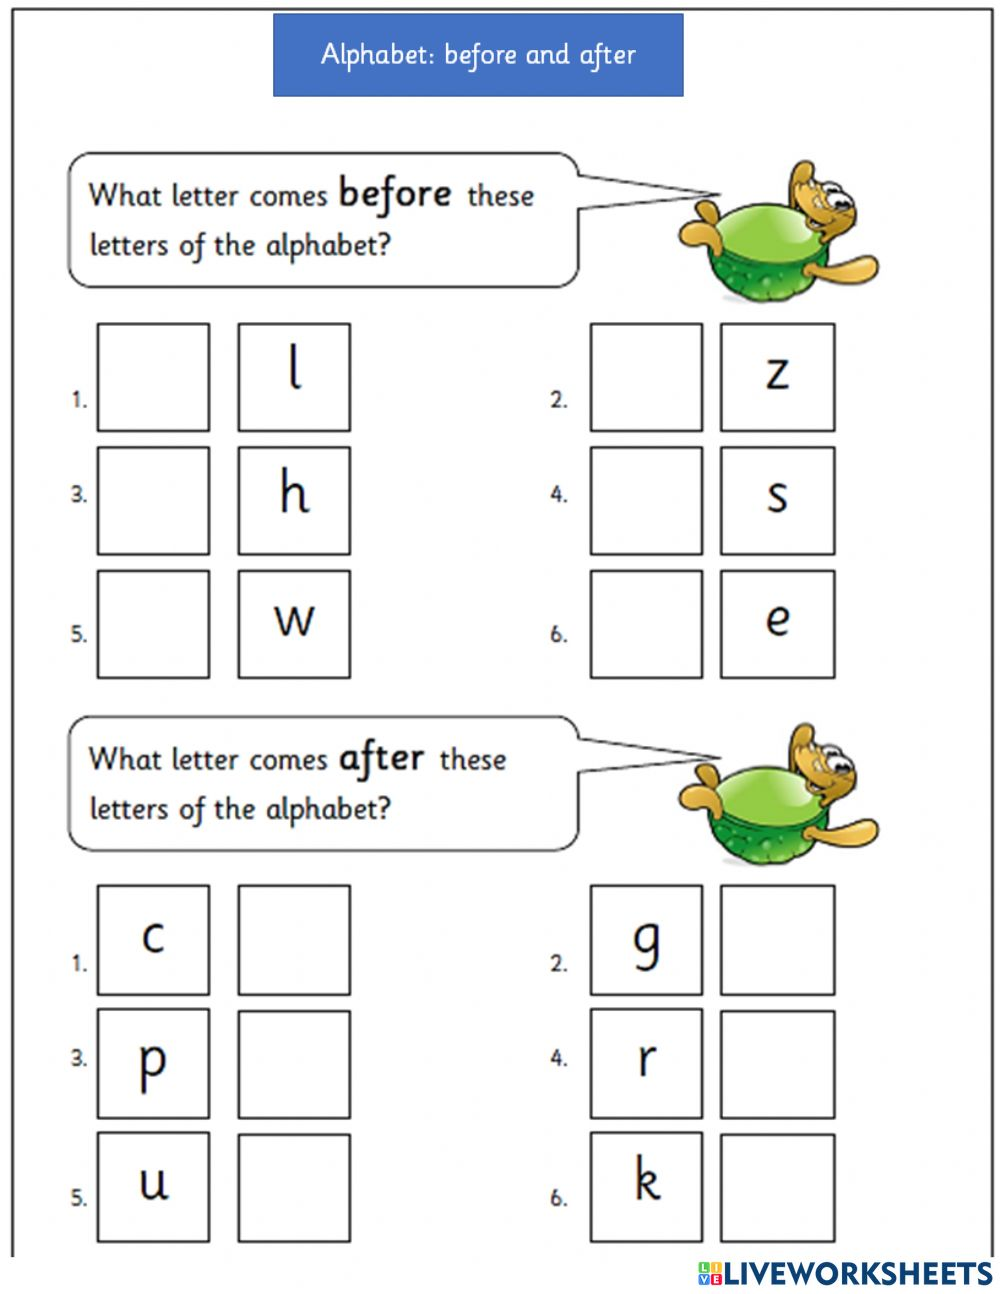 medium resolution of Abc before and after 3 worksheet